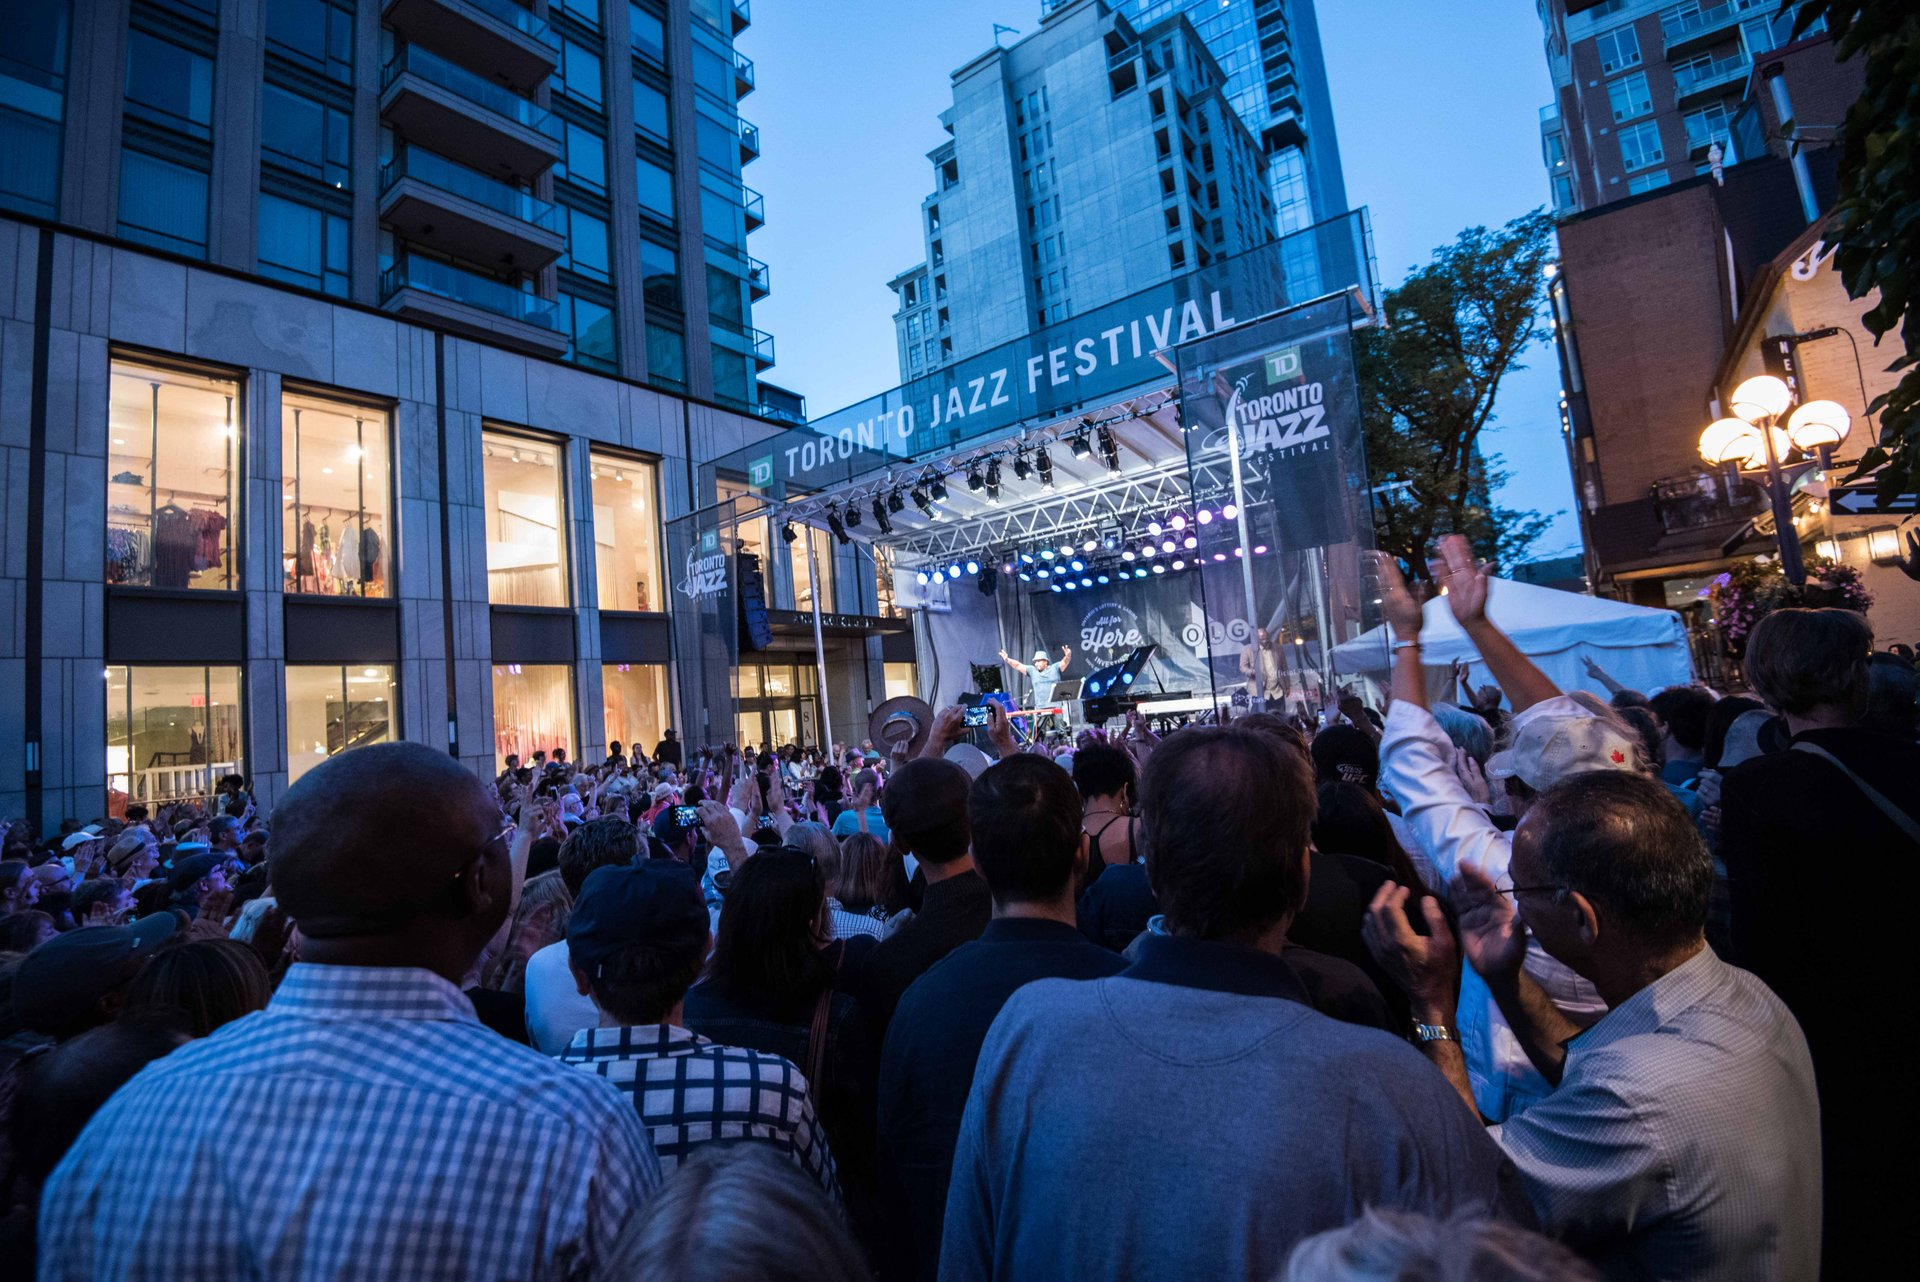 Toronto Jazz Festival in Toronto 2019 - Best Time